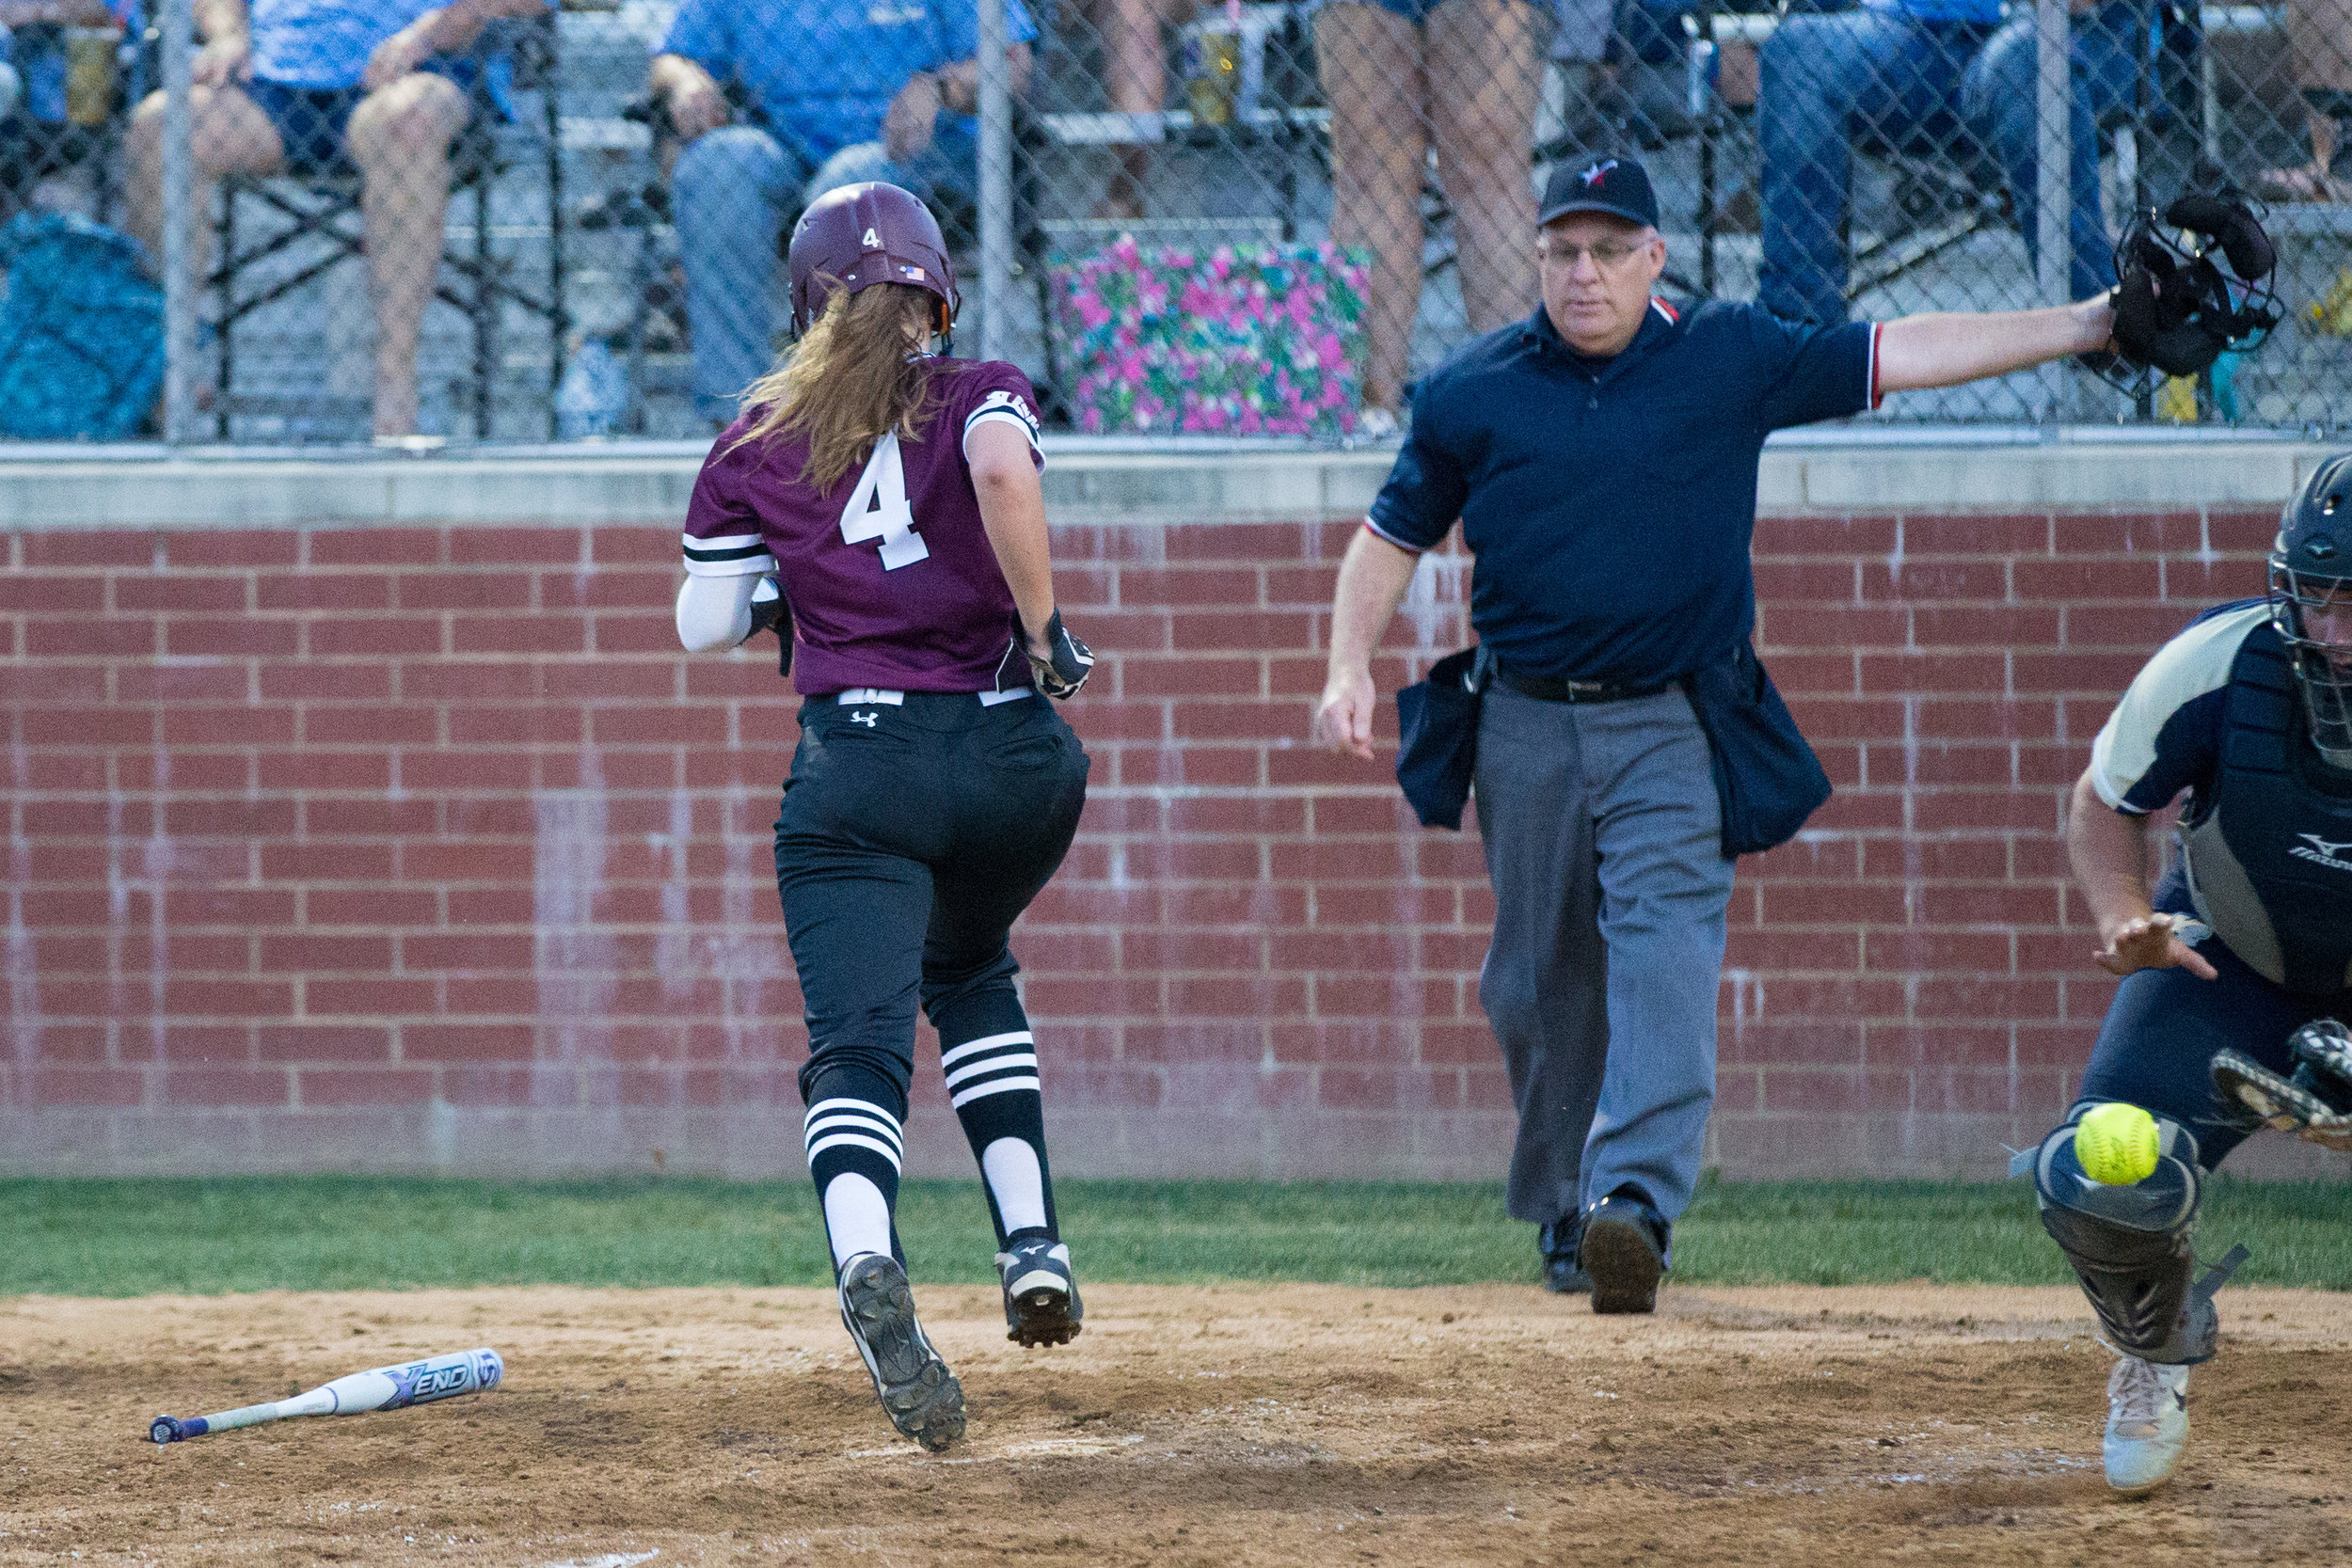 5_18 Wylie Softball-165.jpg